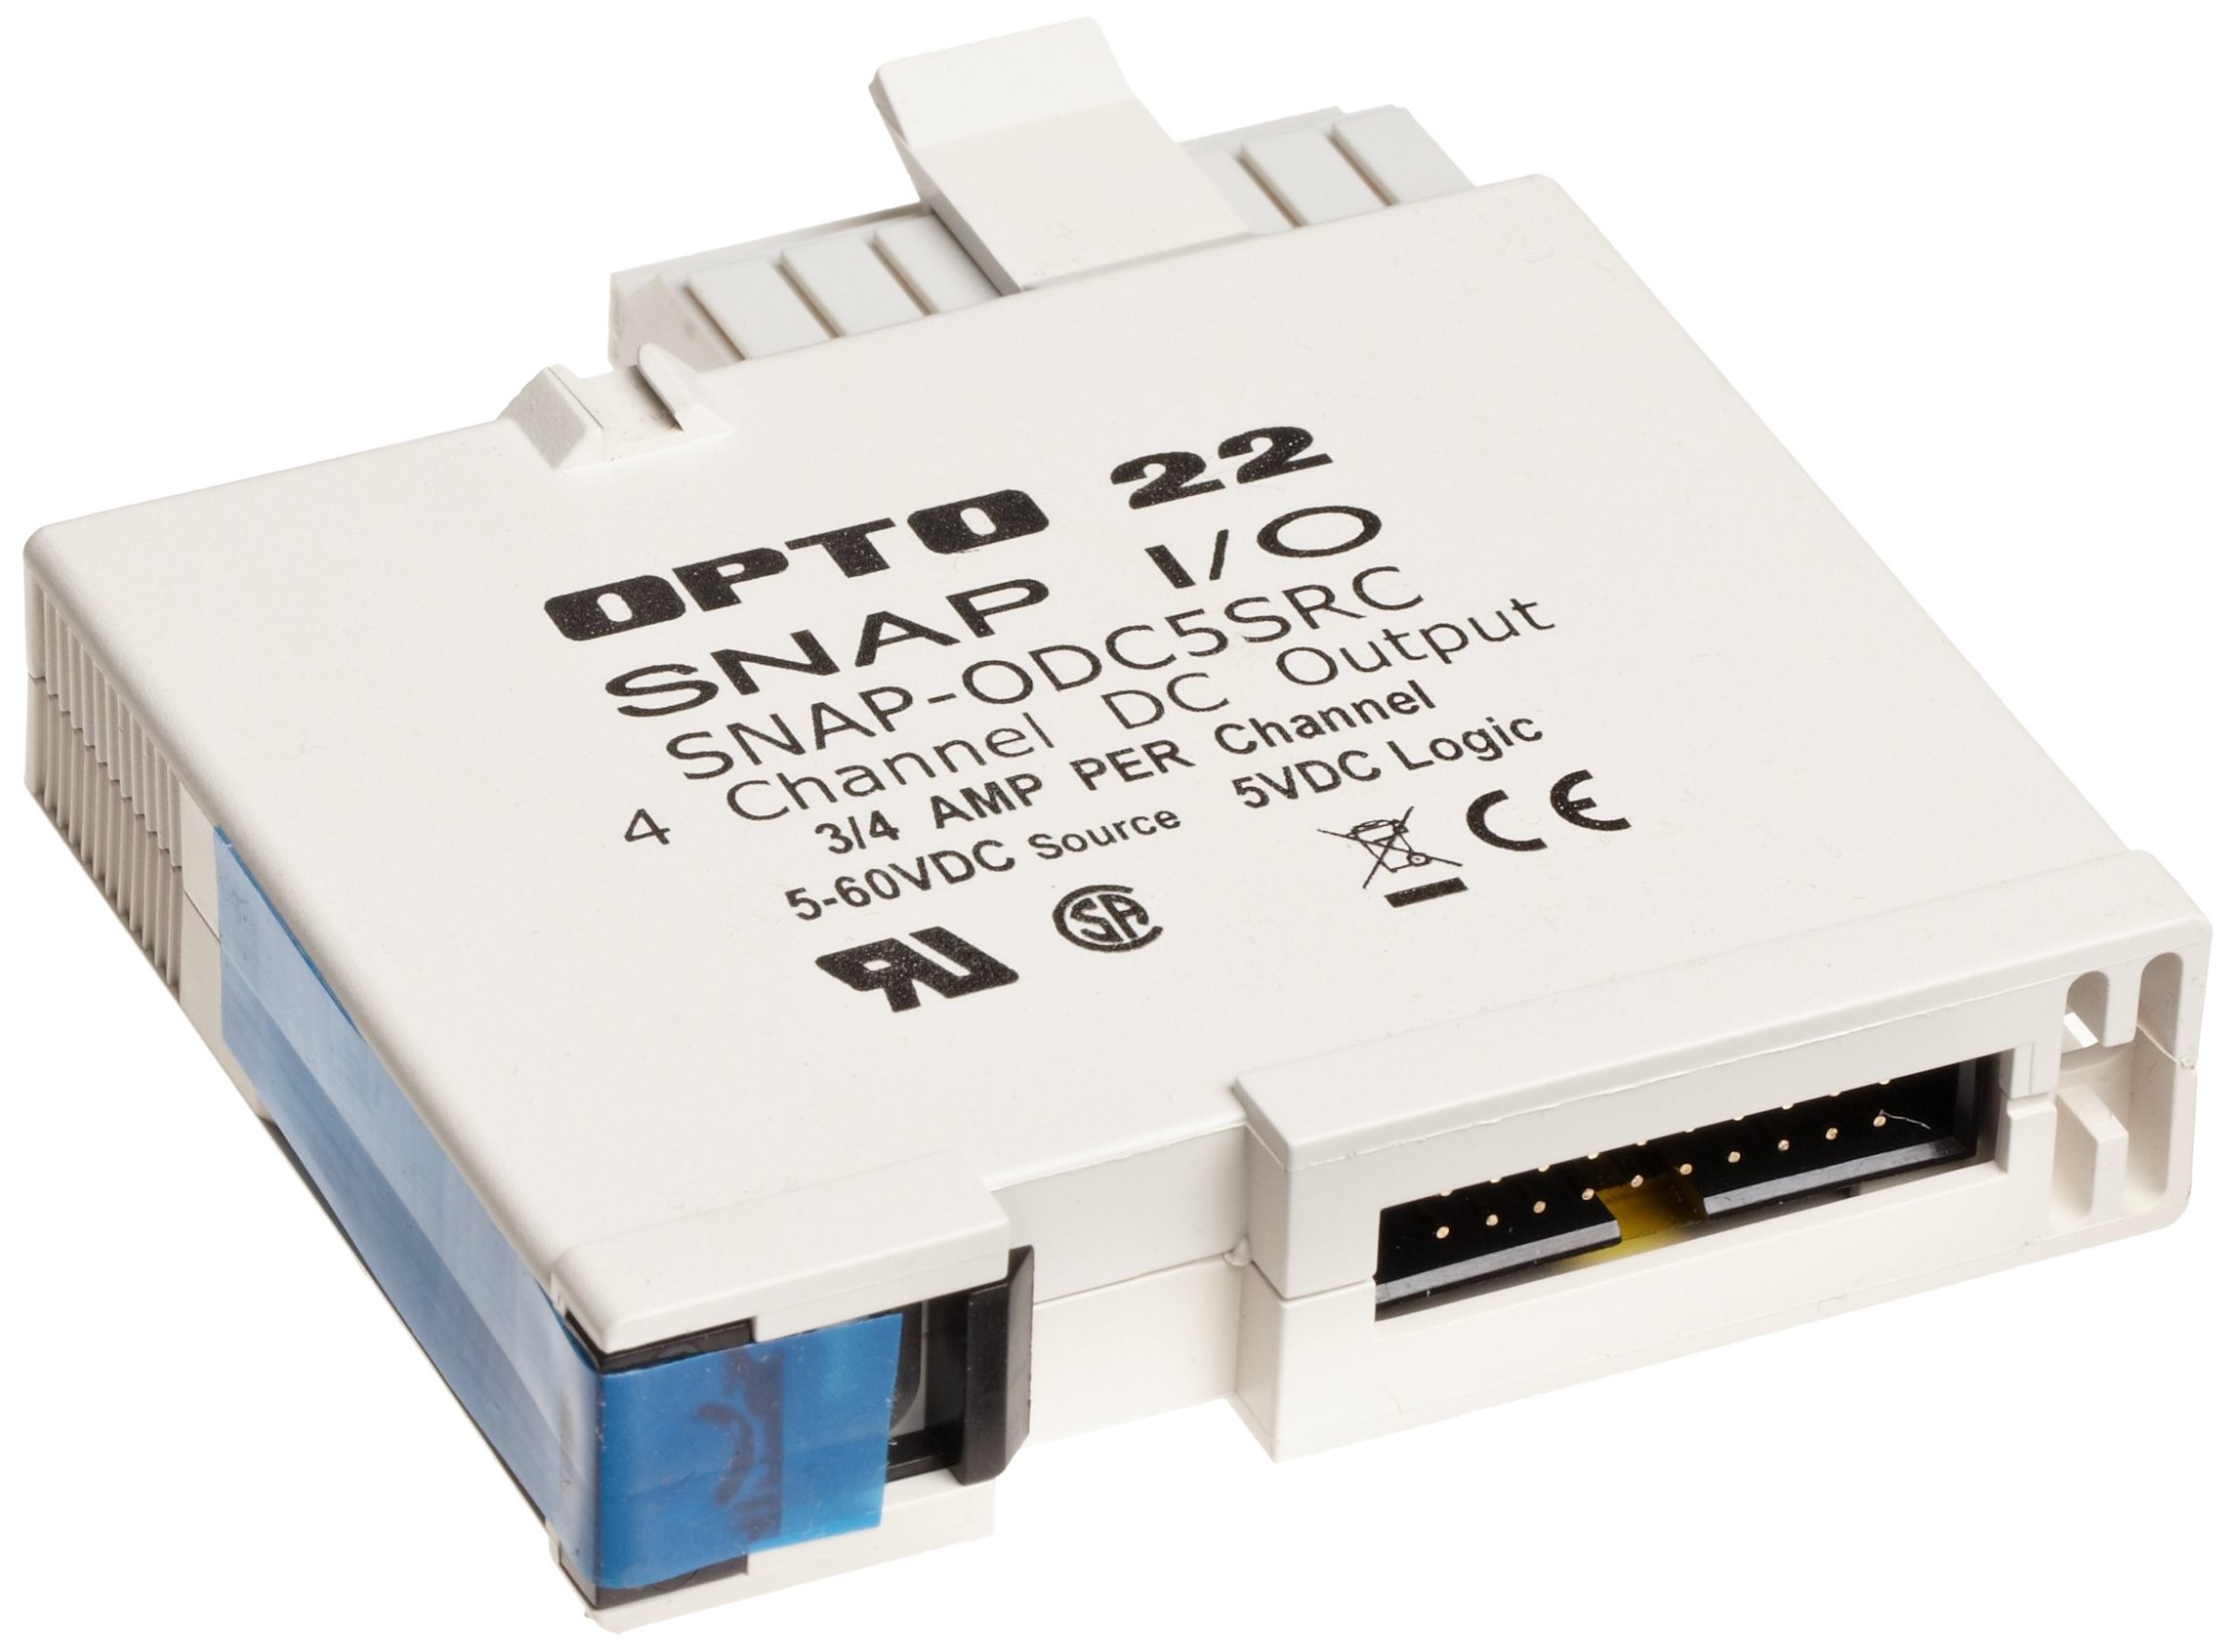 Opto 22 SNAP-ODC5SRC - SNAP Digital (Discrete) Output Module, Load Sourcing, 4-Channel, 5-60 VDC by Opto 22 (Image #1)